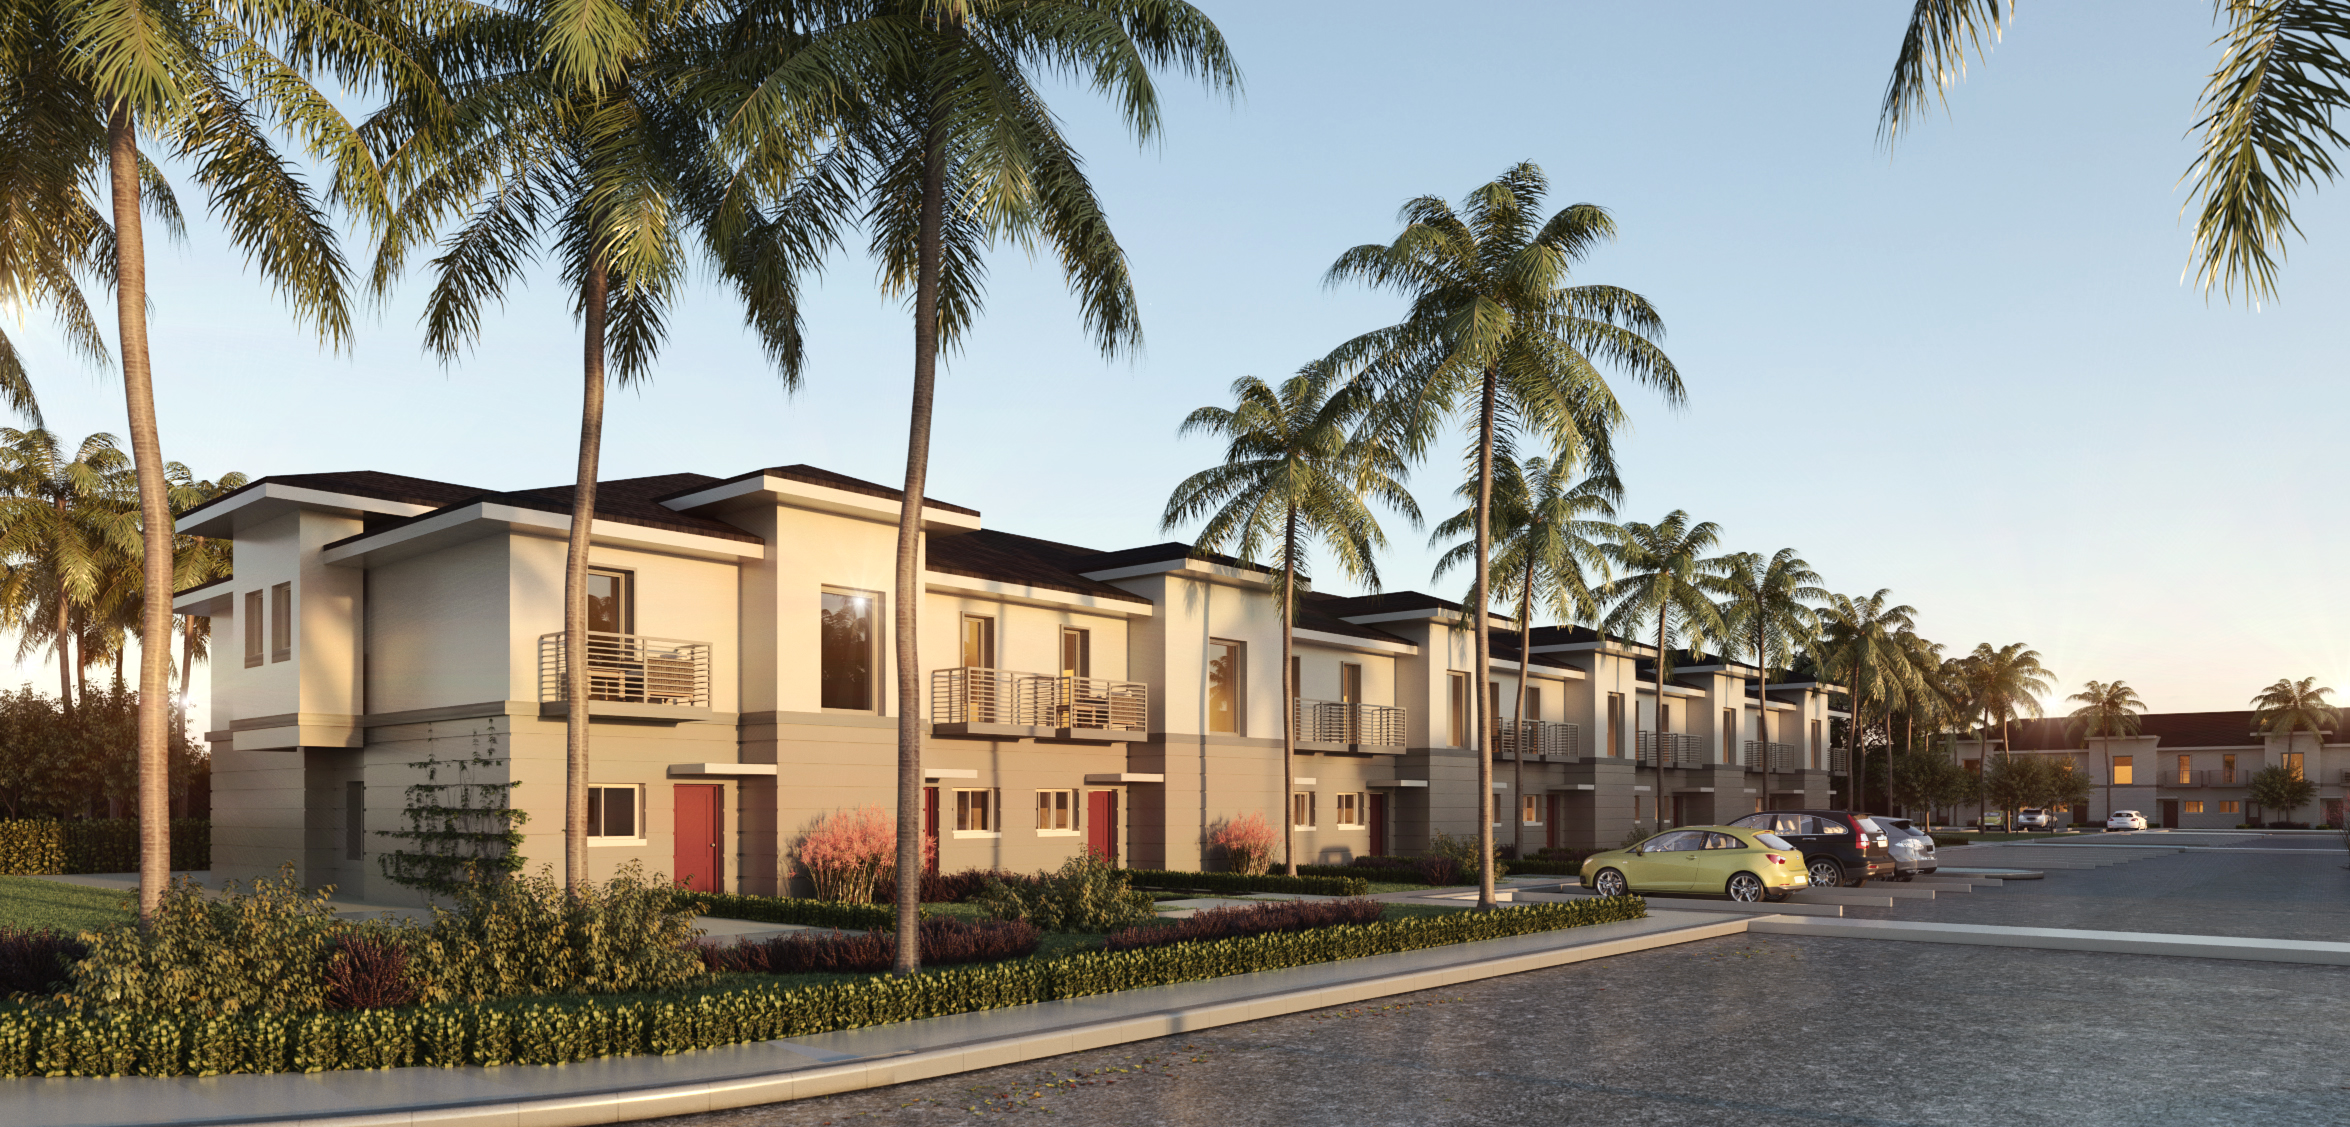 2 Aviara Lake Worth - ArqRender C.jpg